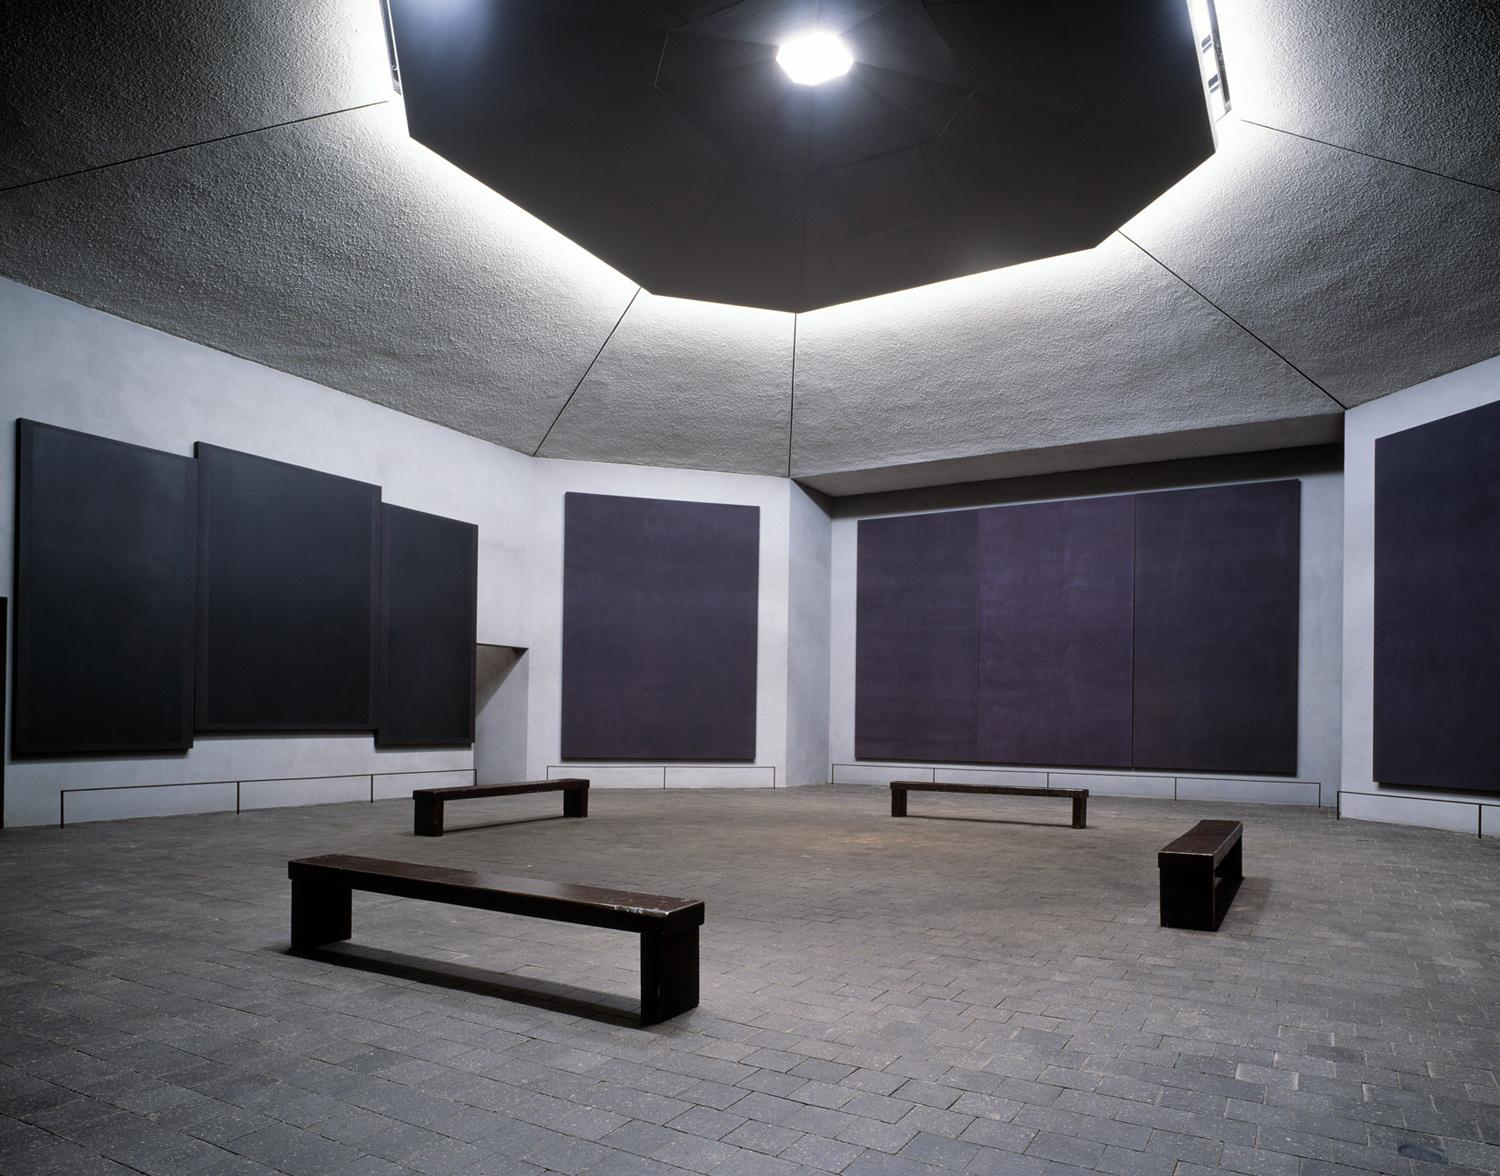 The Rothko Chapel in Houston, Texas. Photo: BEND Productions